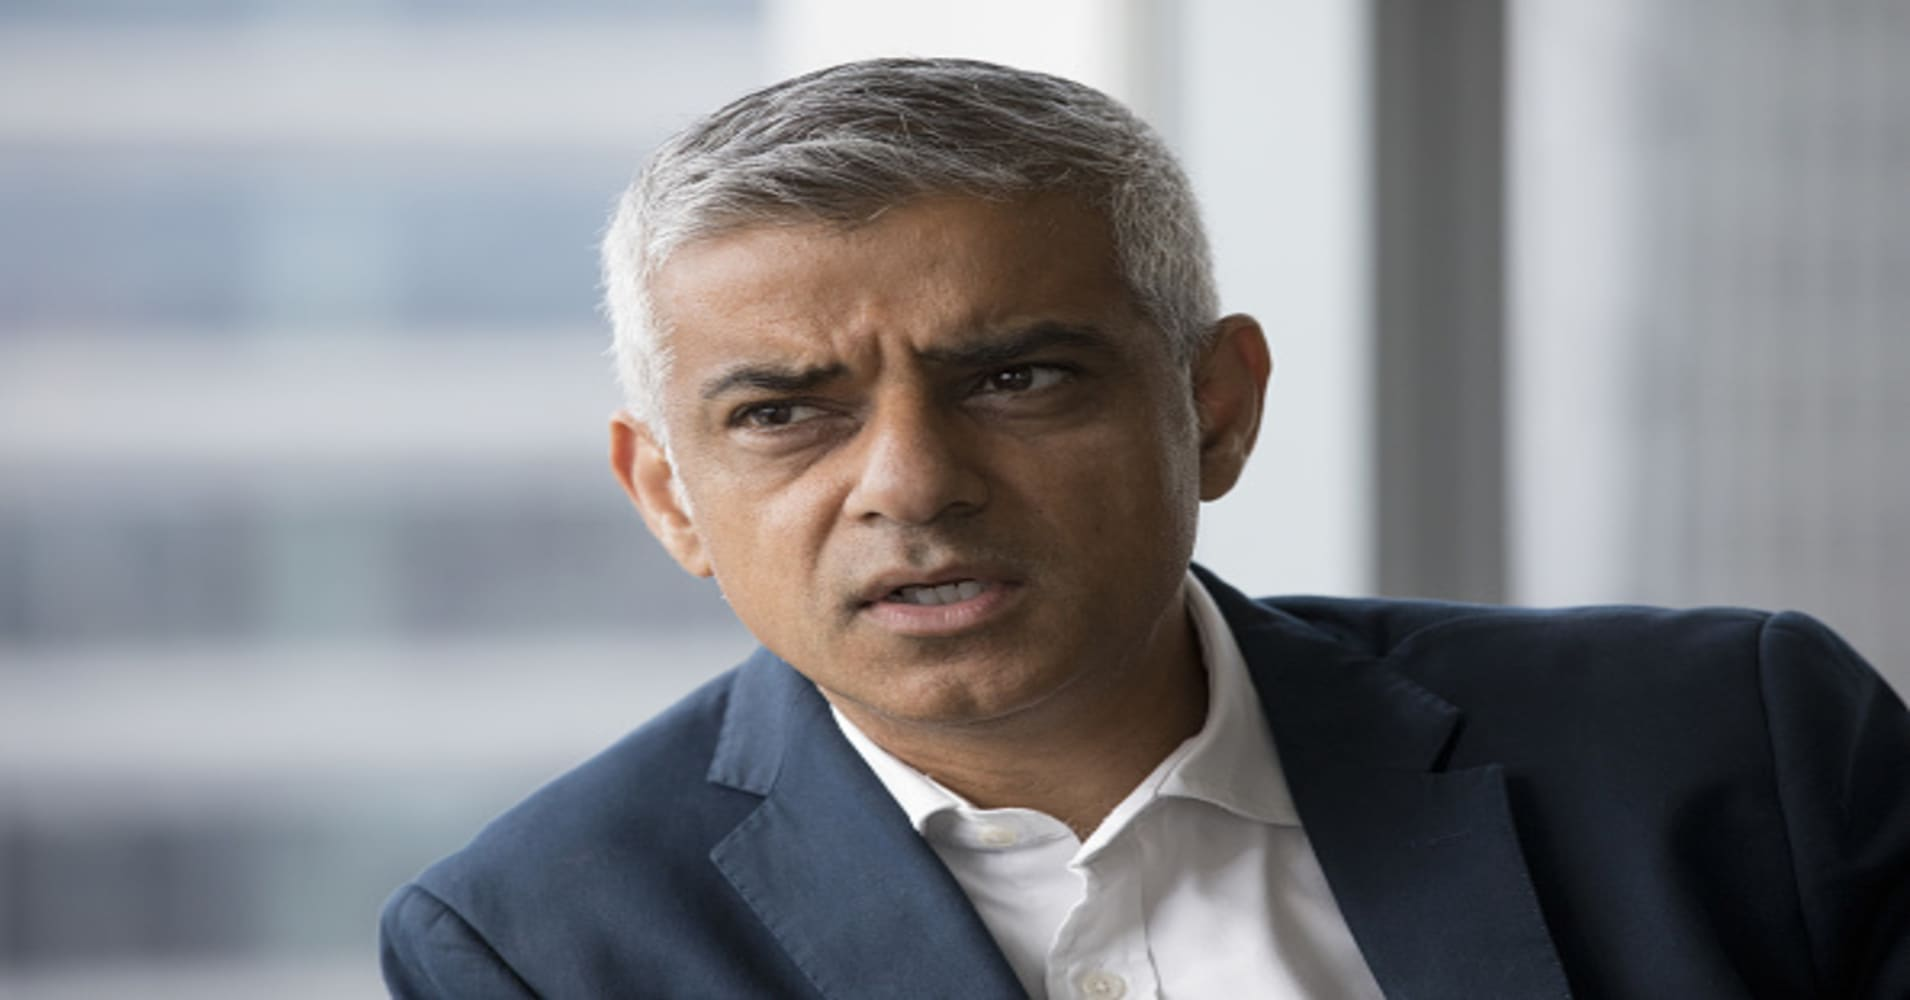 'Expectations from U S  president higher than others': London Mayor